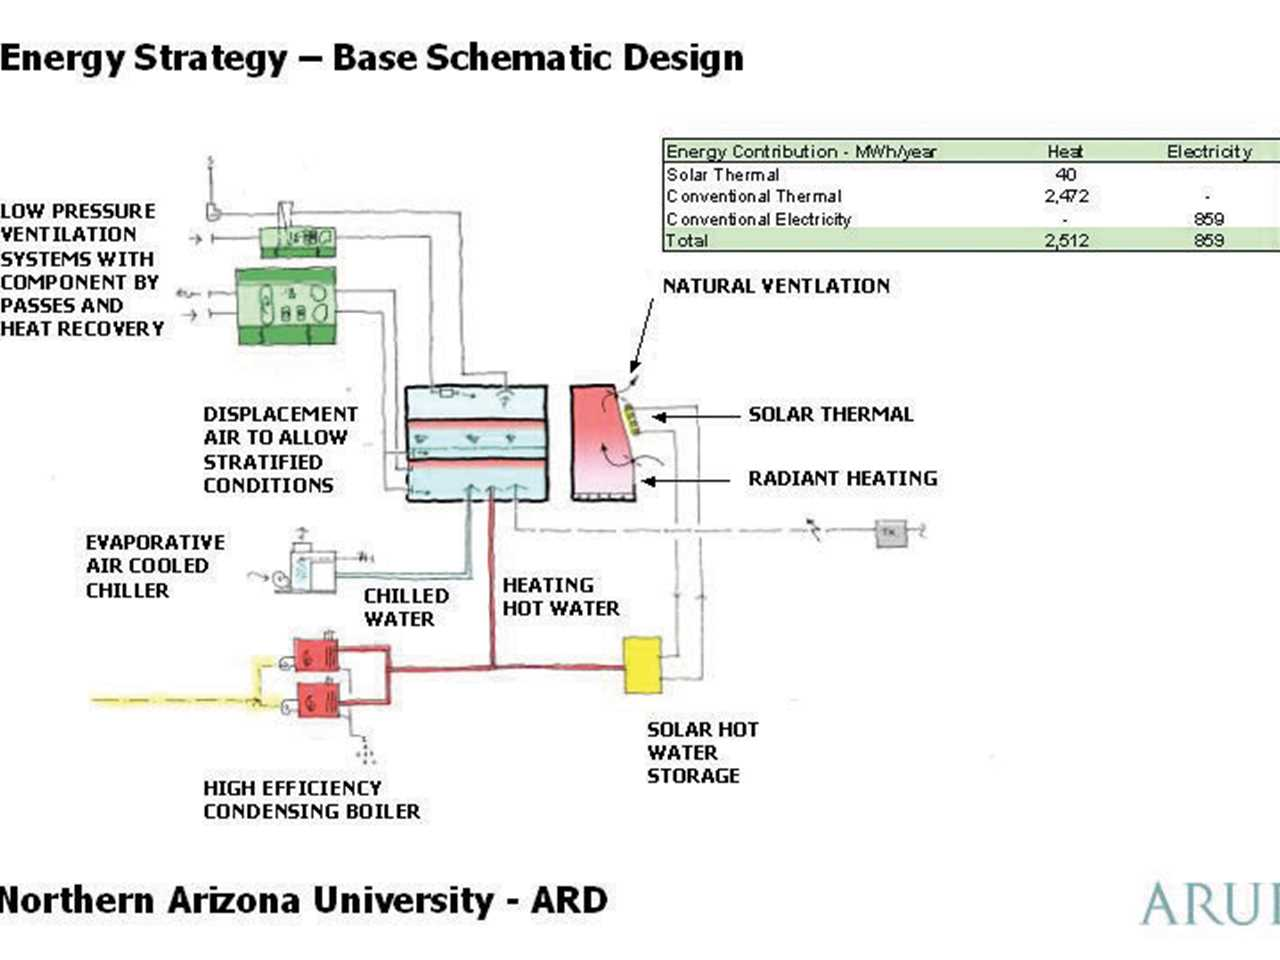 Applied research and development facility flagstaff arizona u project entry 2005 applied research and development facility flagstaff arizona usa energy strategy pooptronica